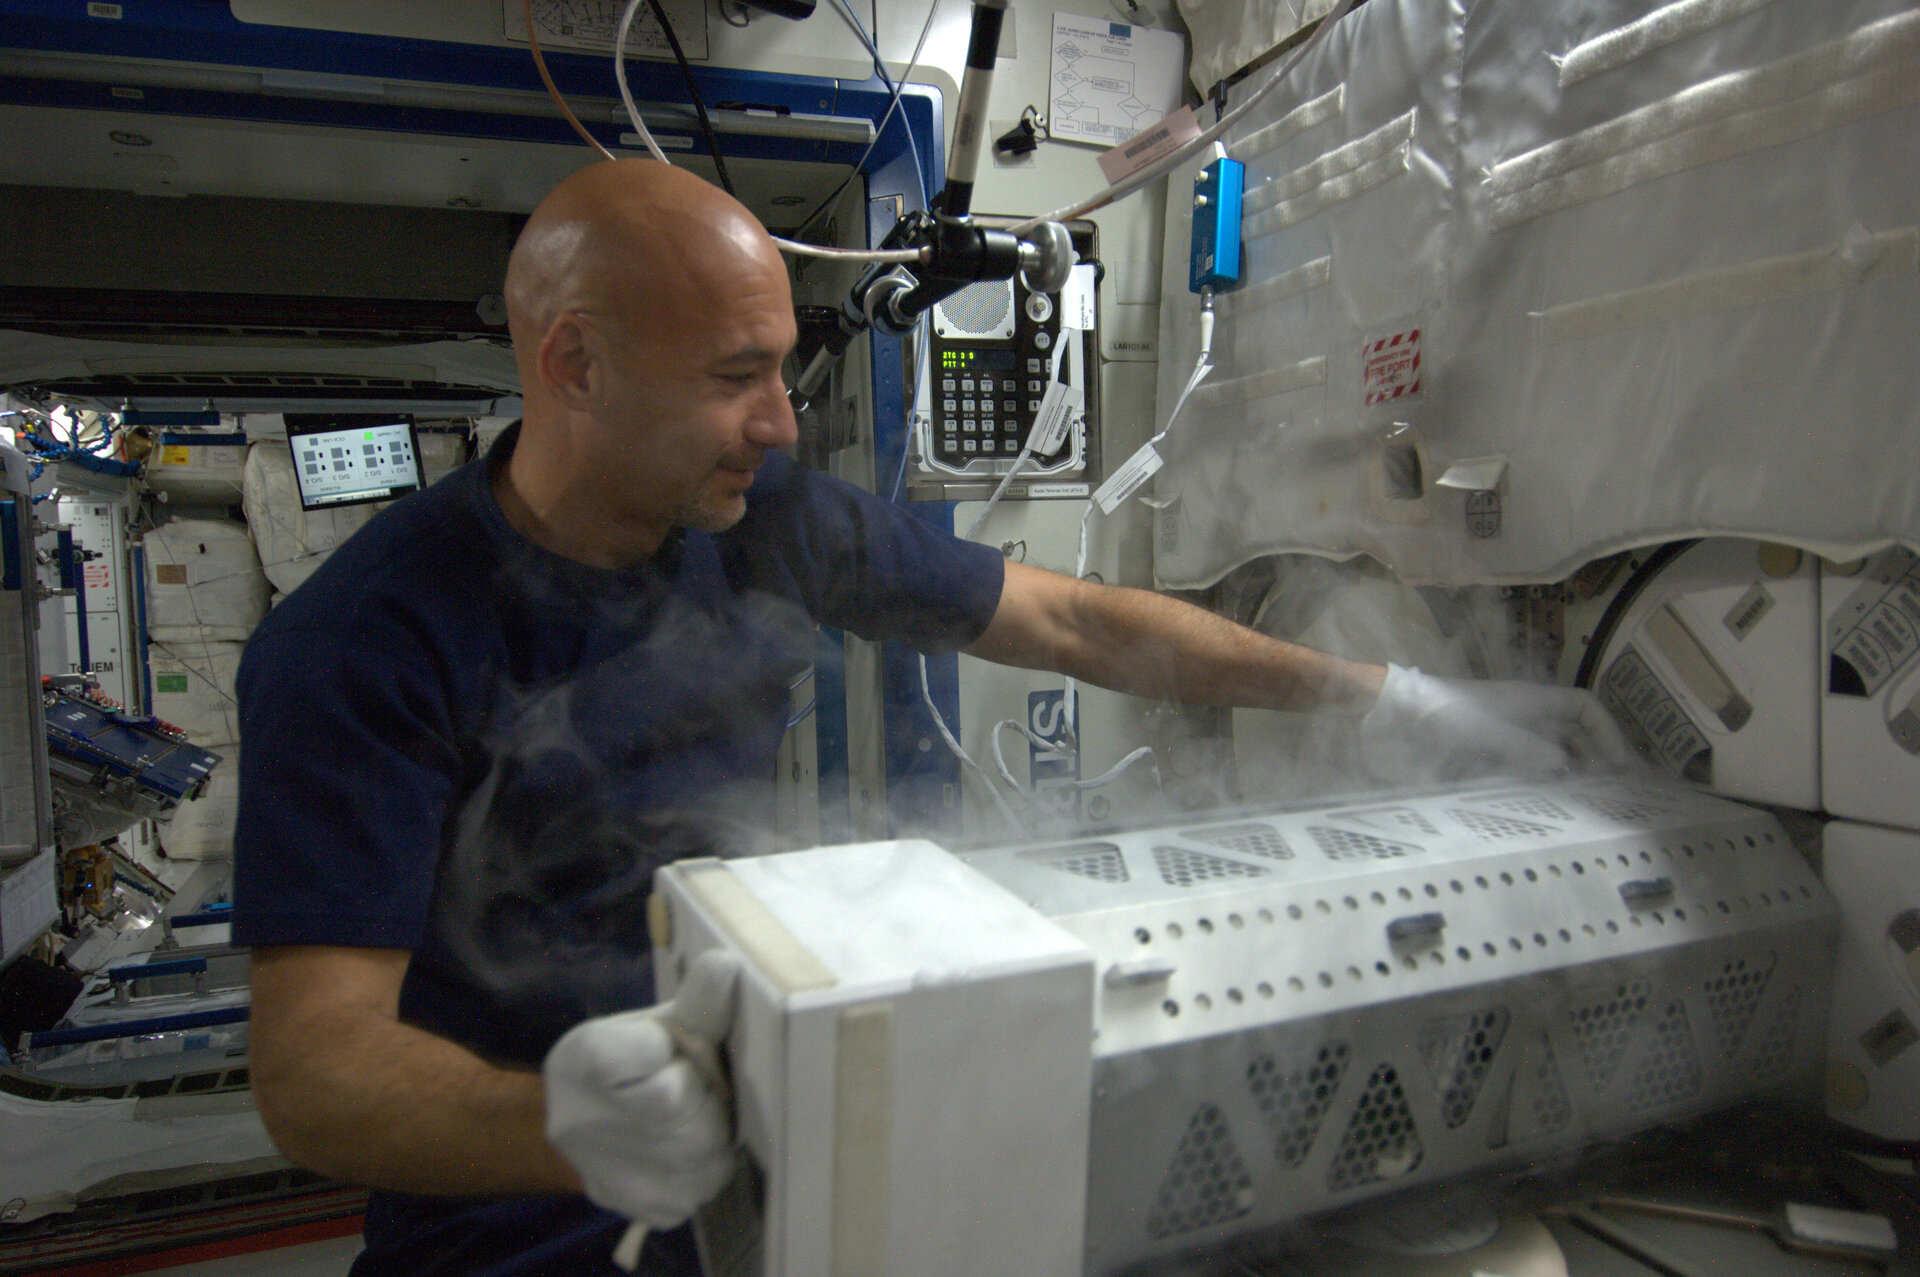 Luca storing experiment on Station